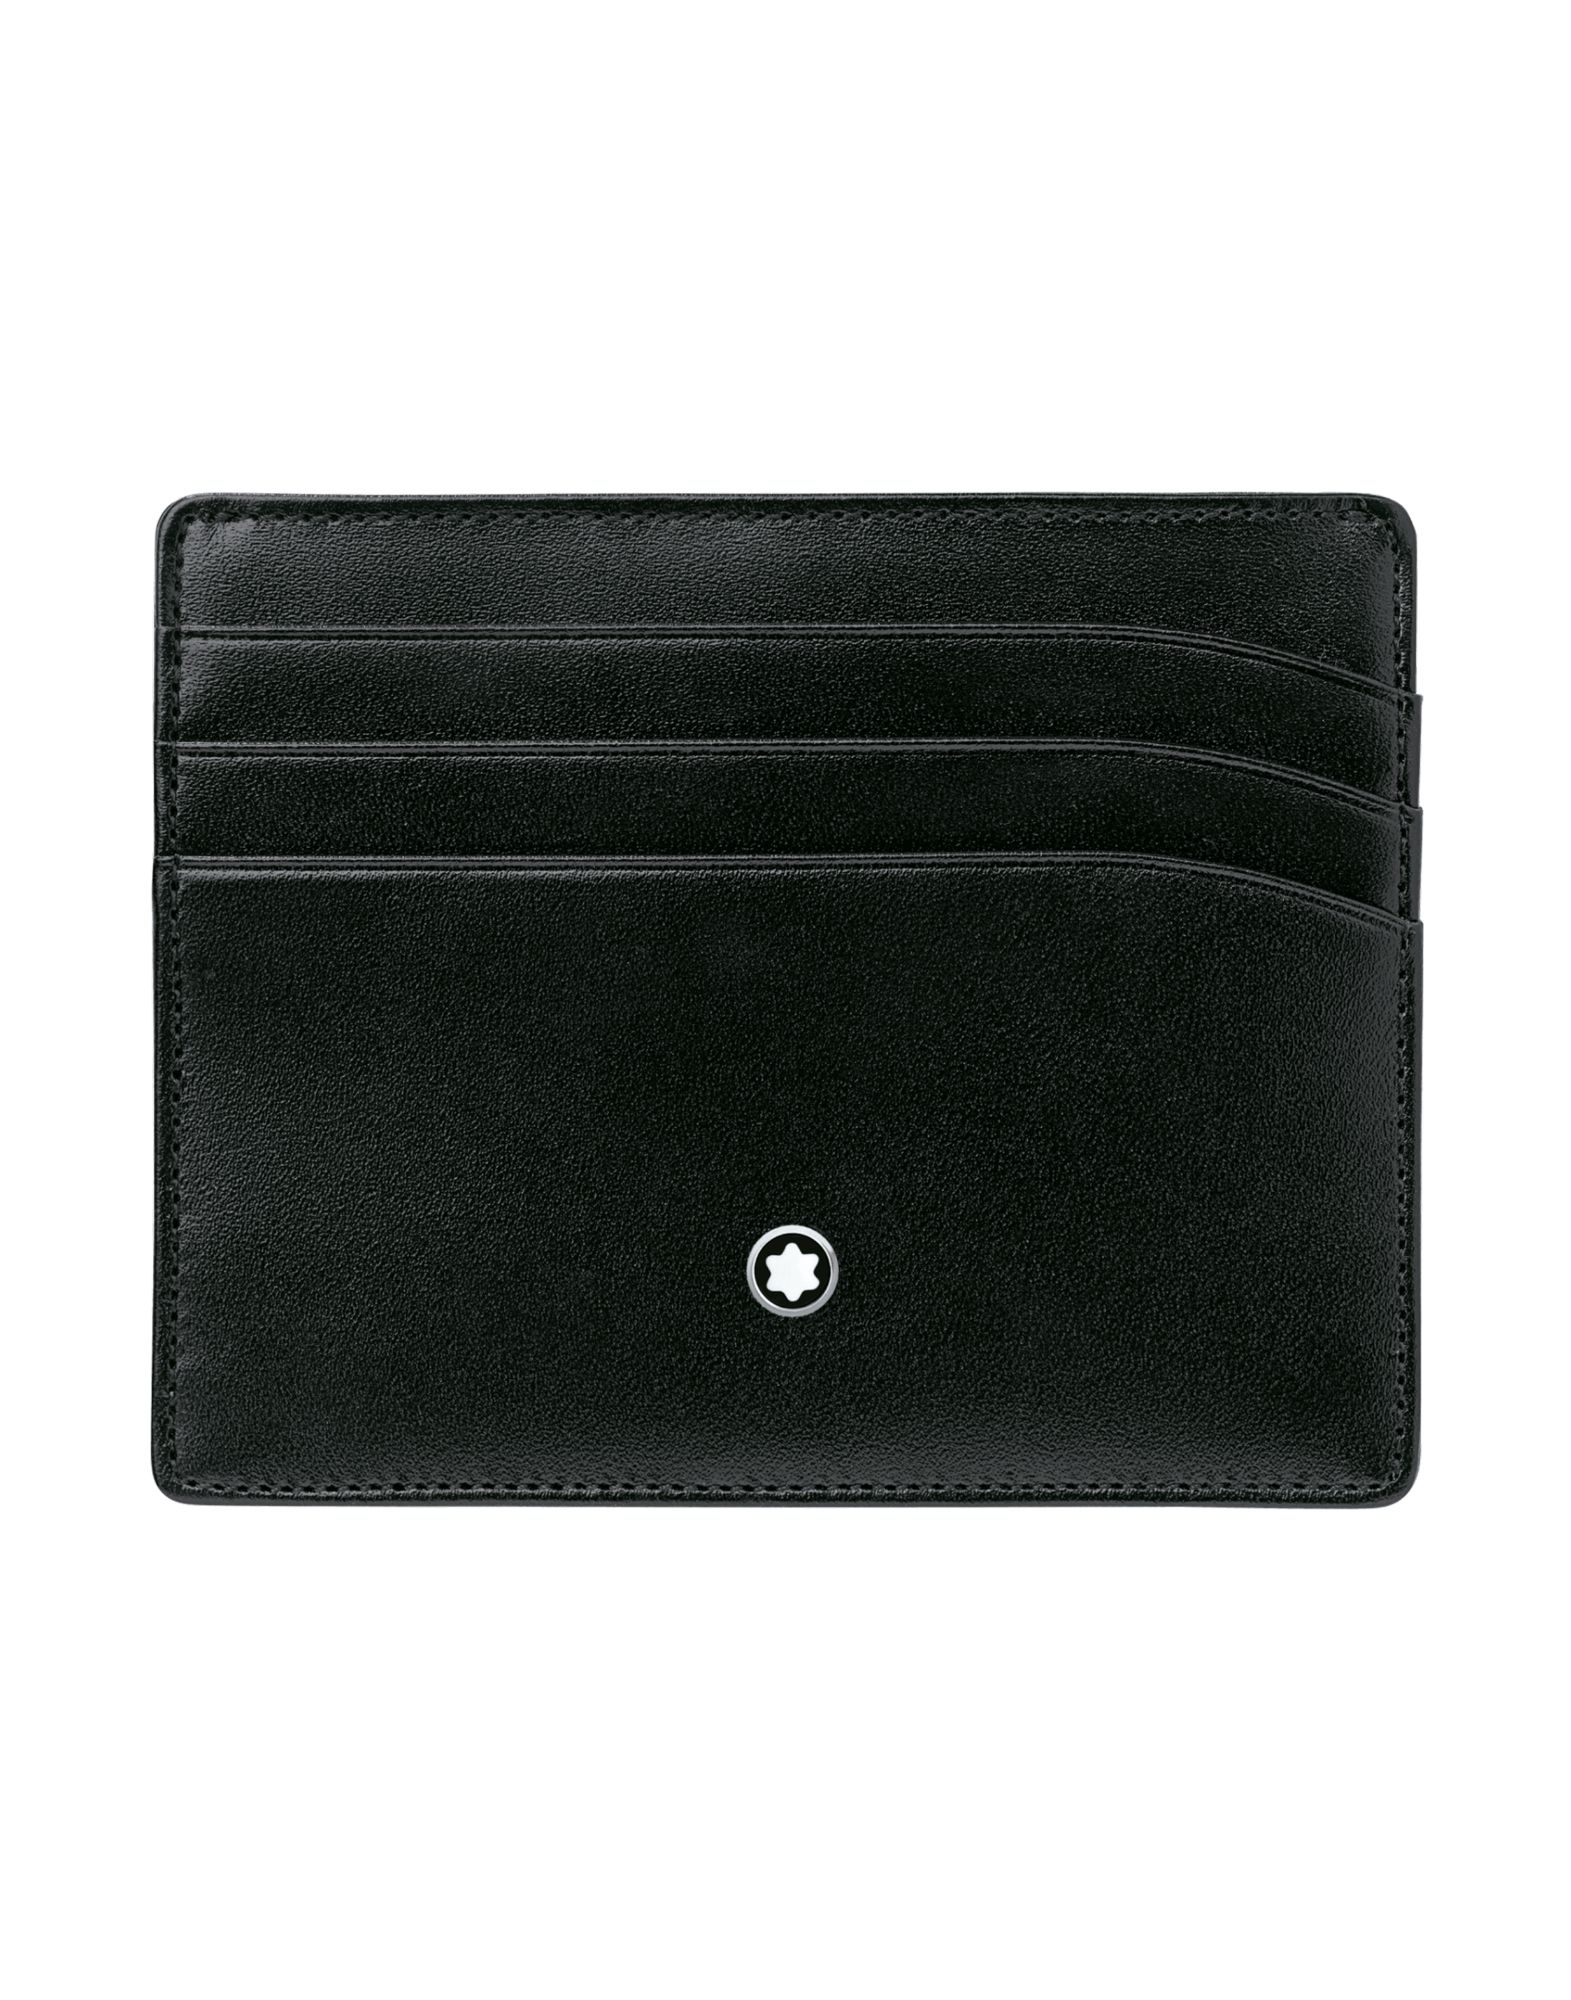 5e847b799a217 Montblanc Wallets for Men - Montblanc Small Leather Goods